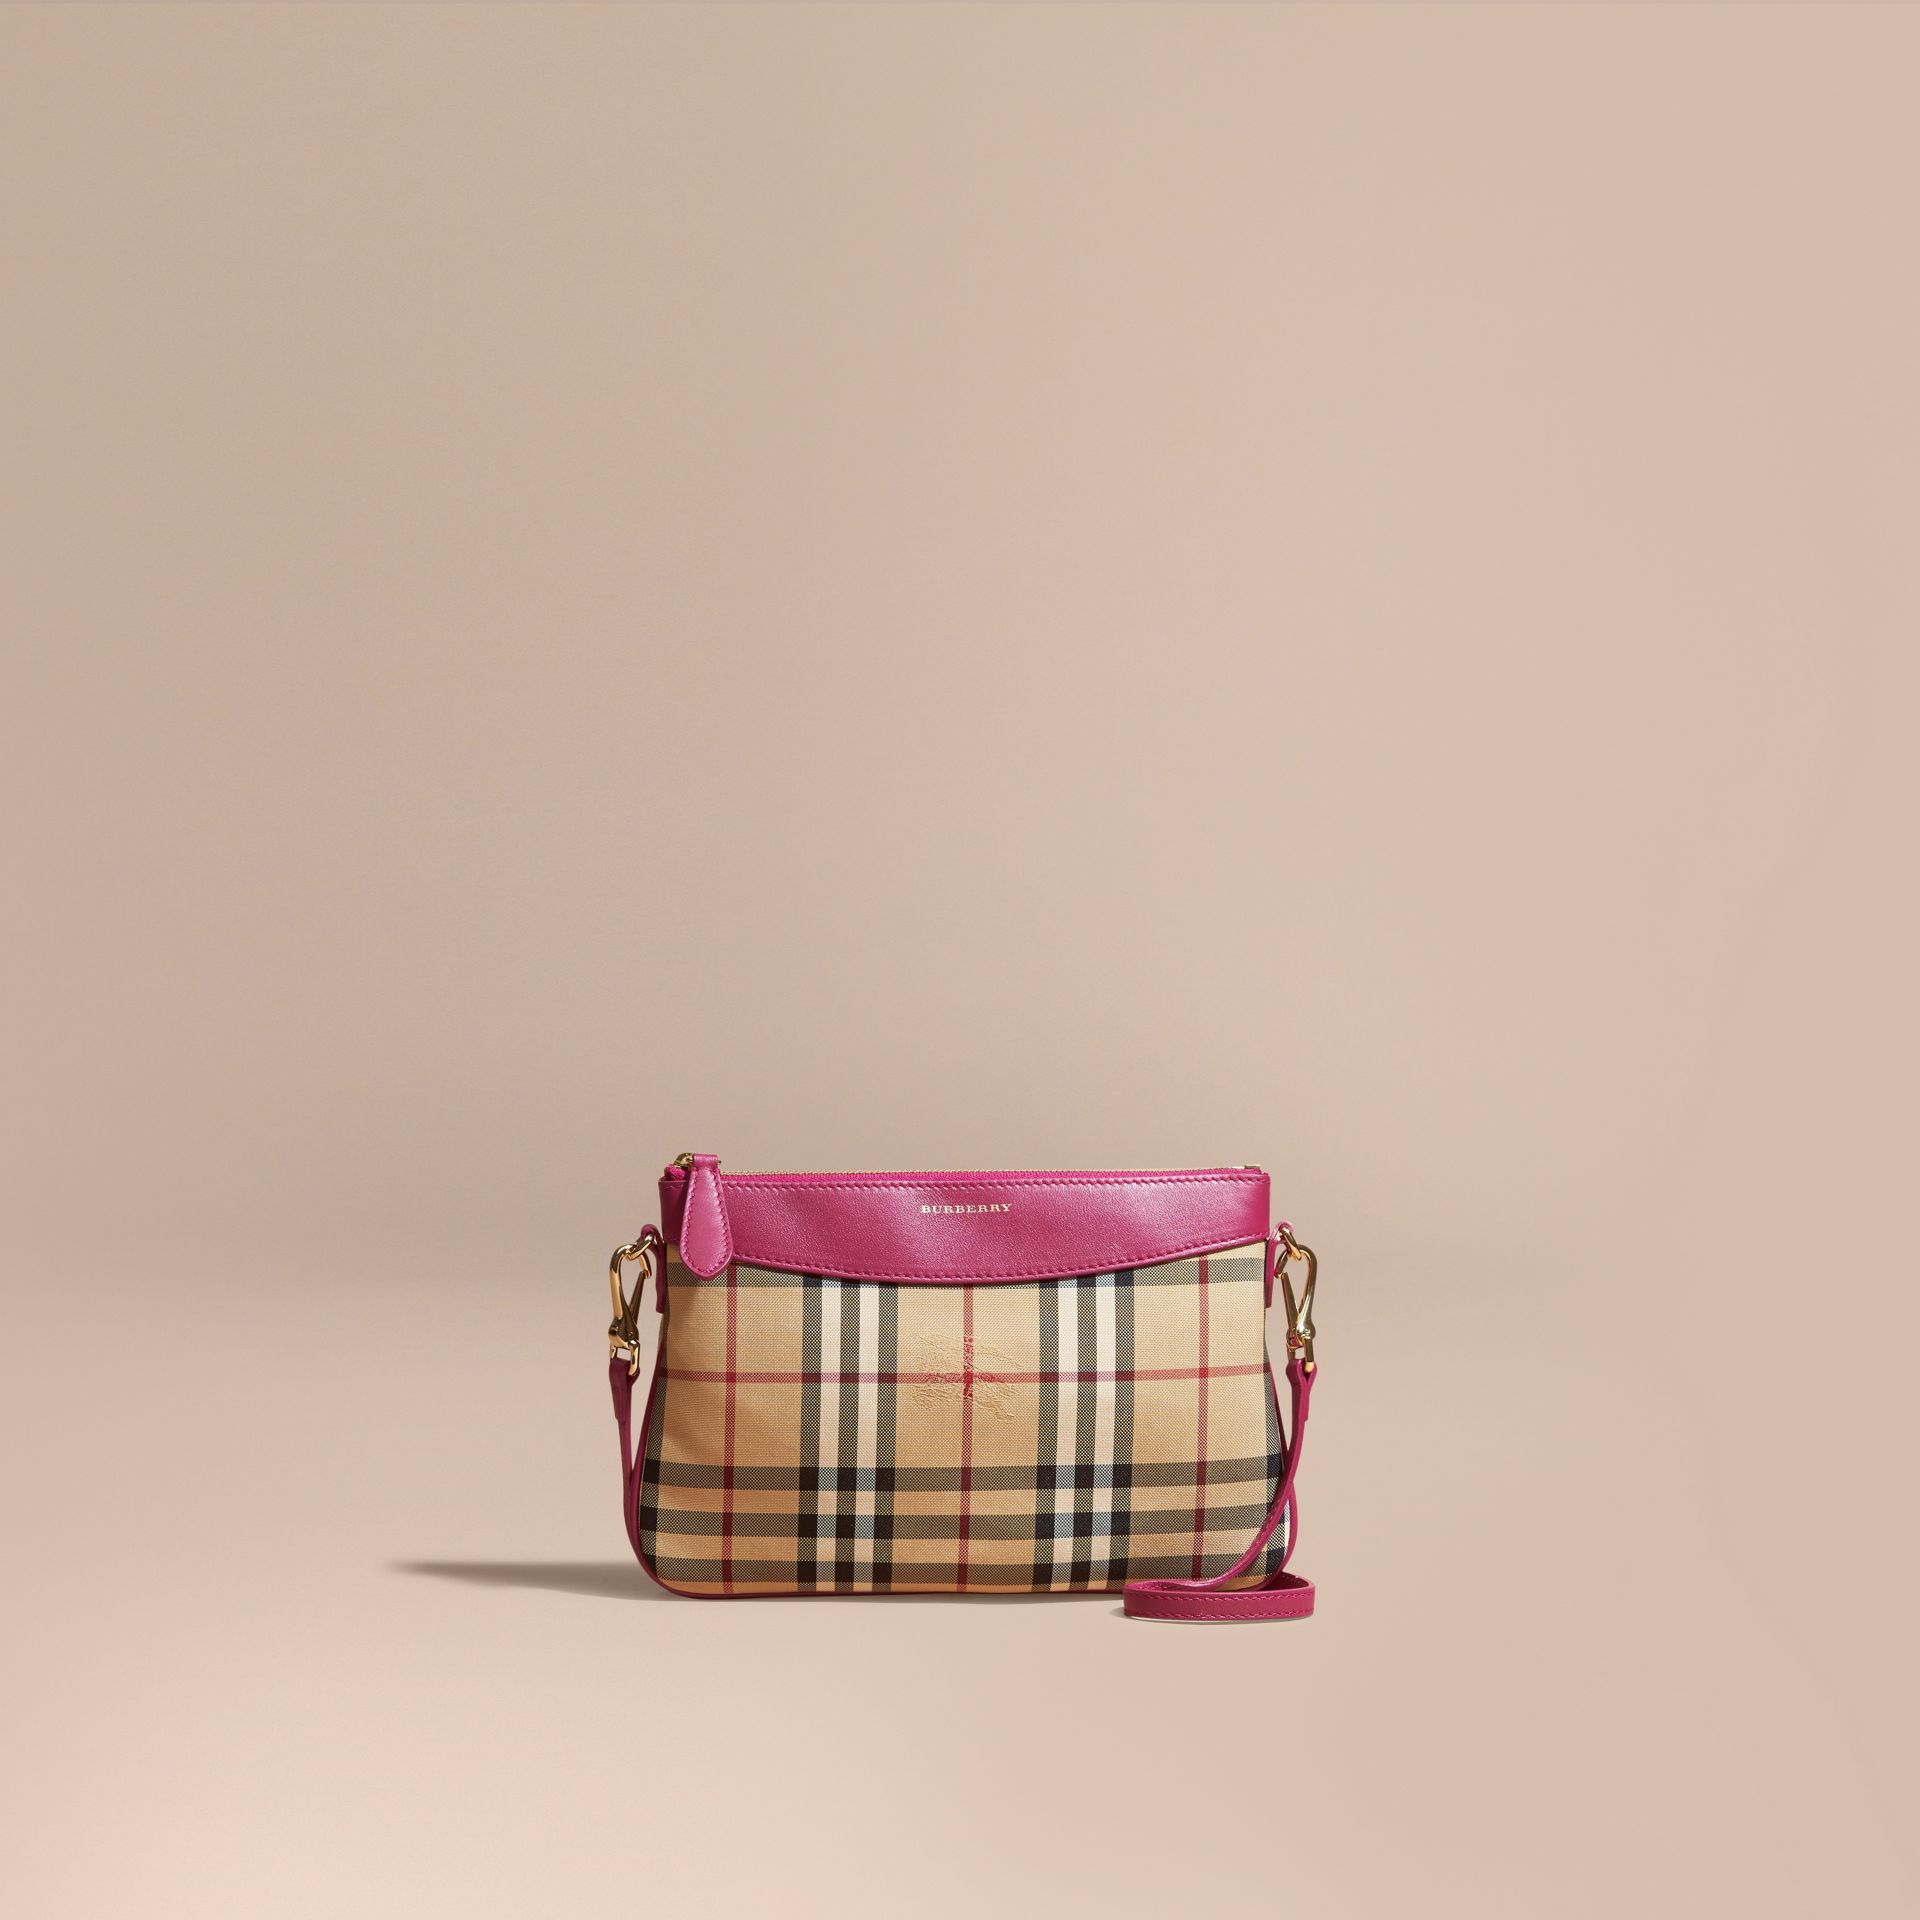 Brilliant fuchsia Horseferry Check and Leather Clutch Bag Brilliant Fuchsia - gallery image 9